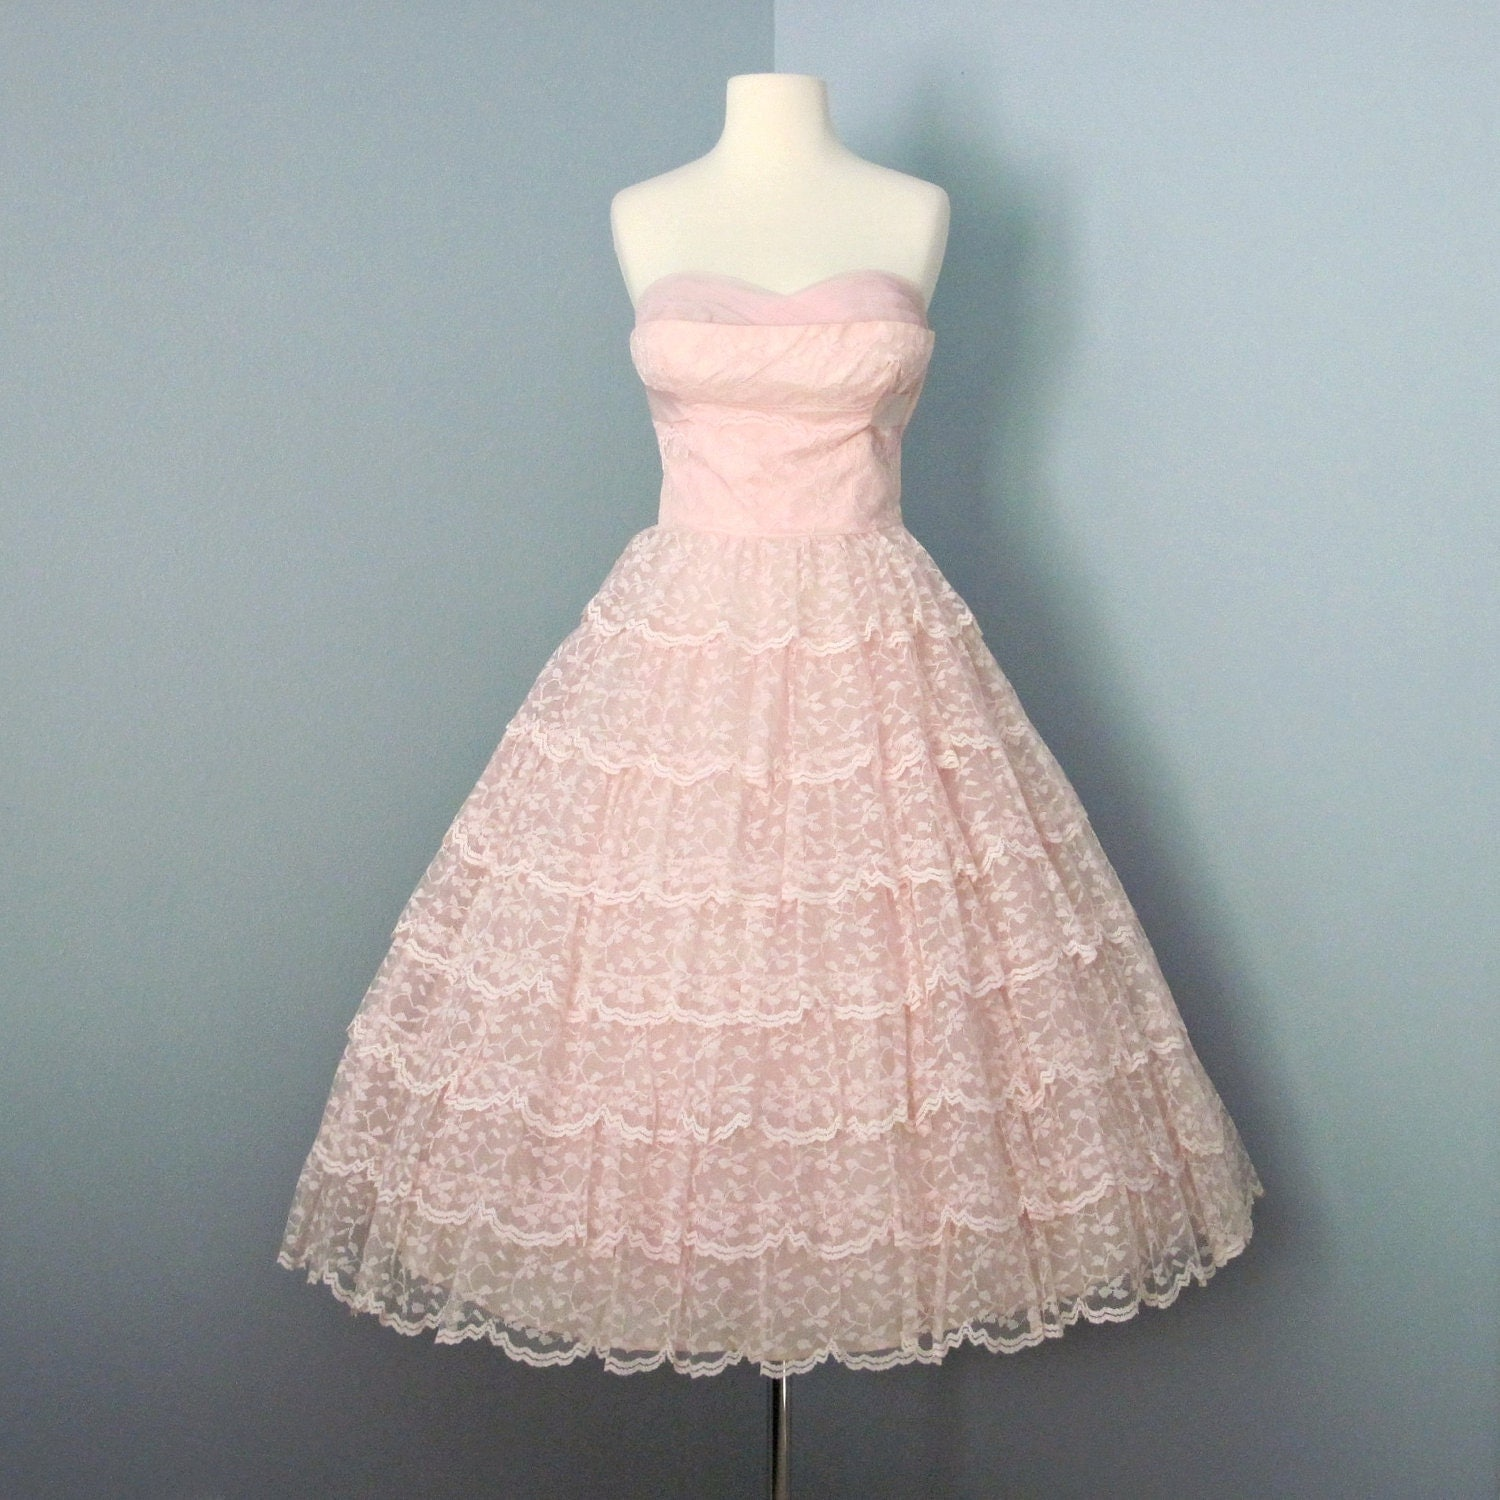 1950s Prom Dress Pale Pink Vintage Lace Tulle Wedding Dress